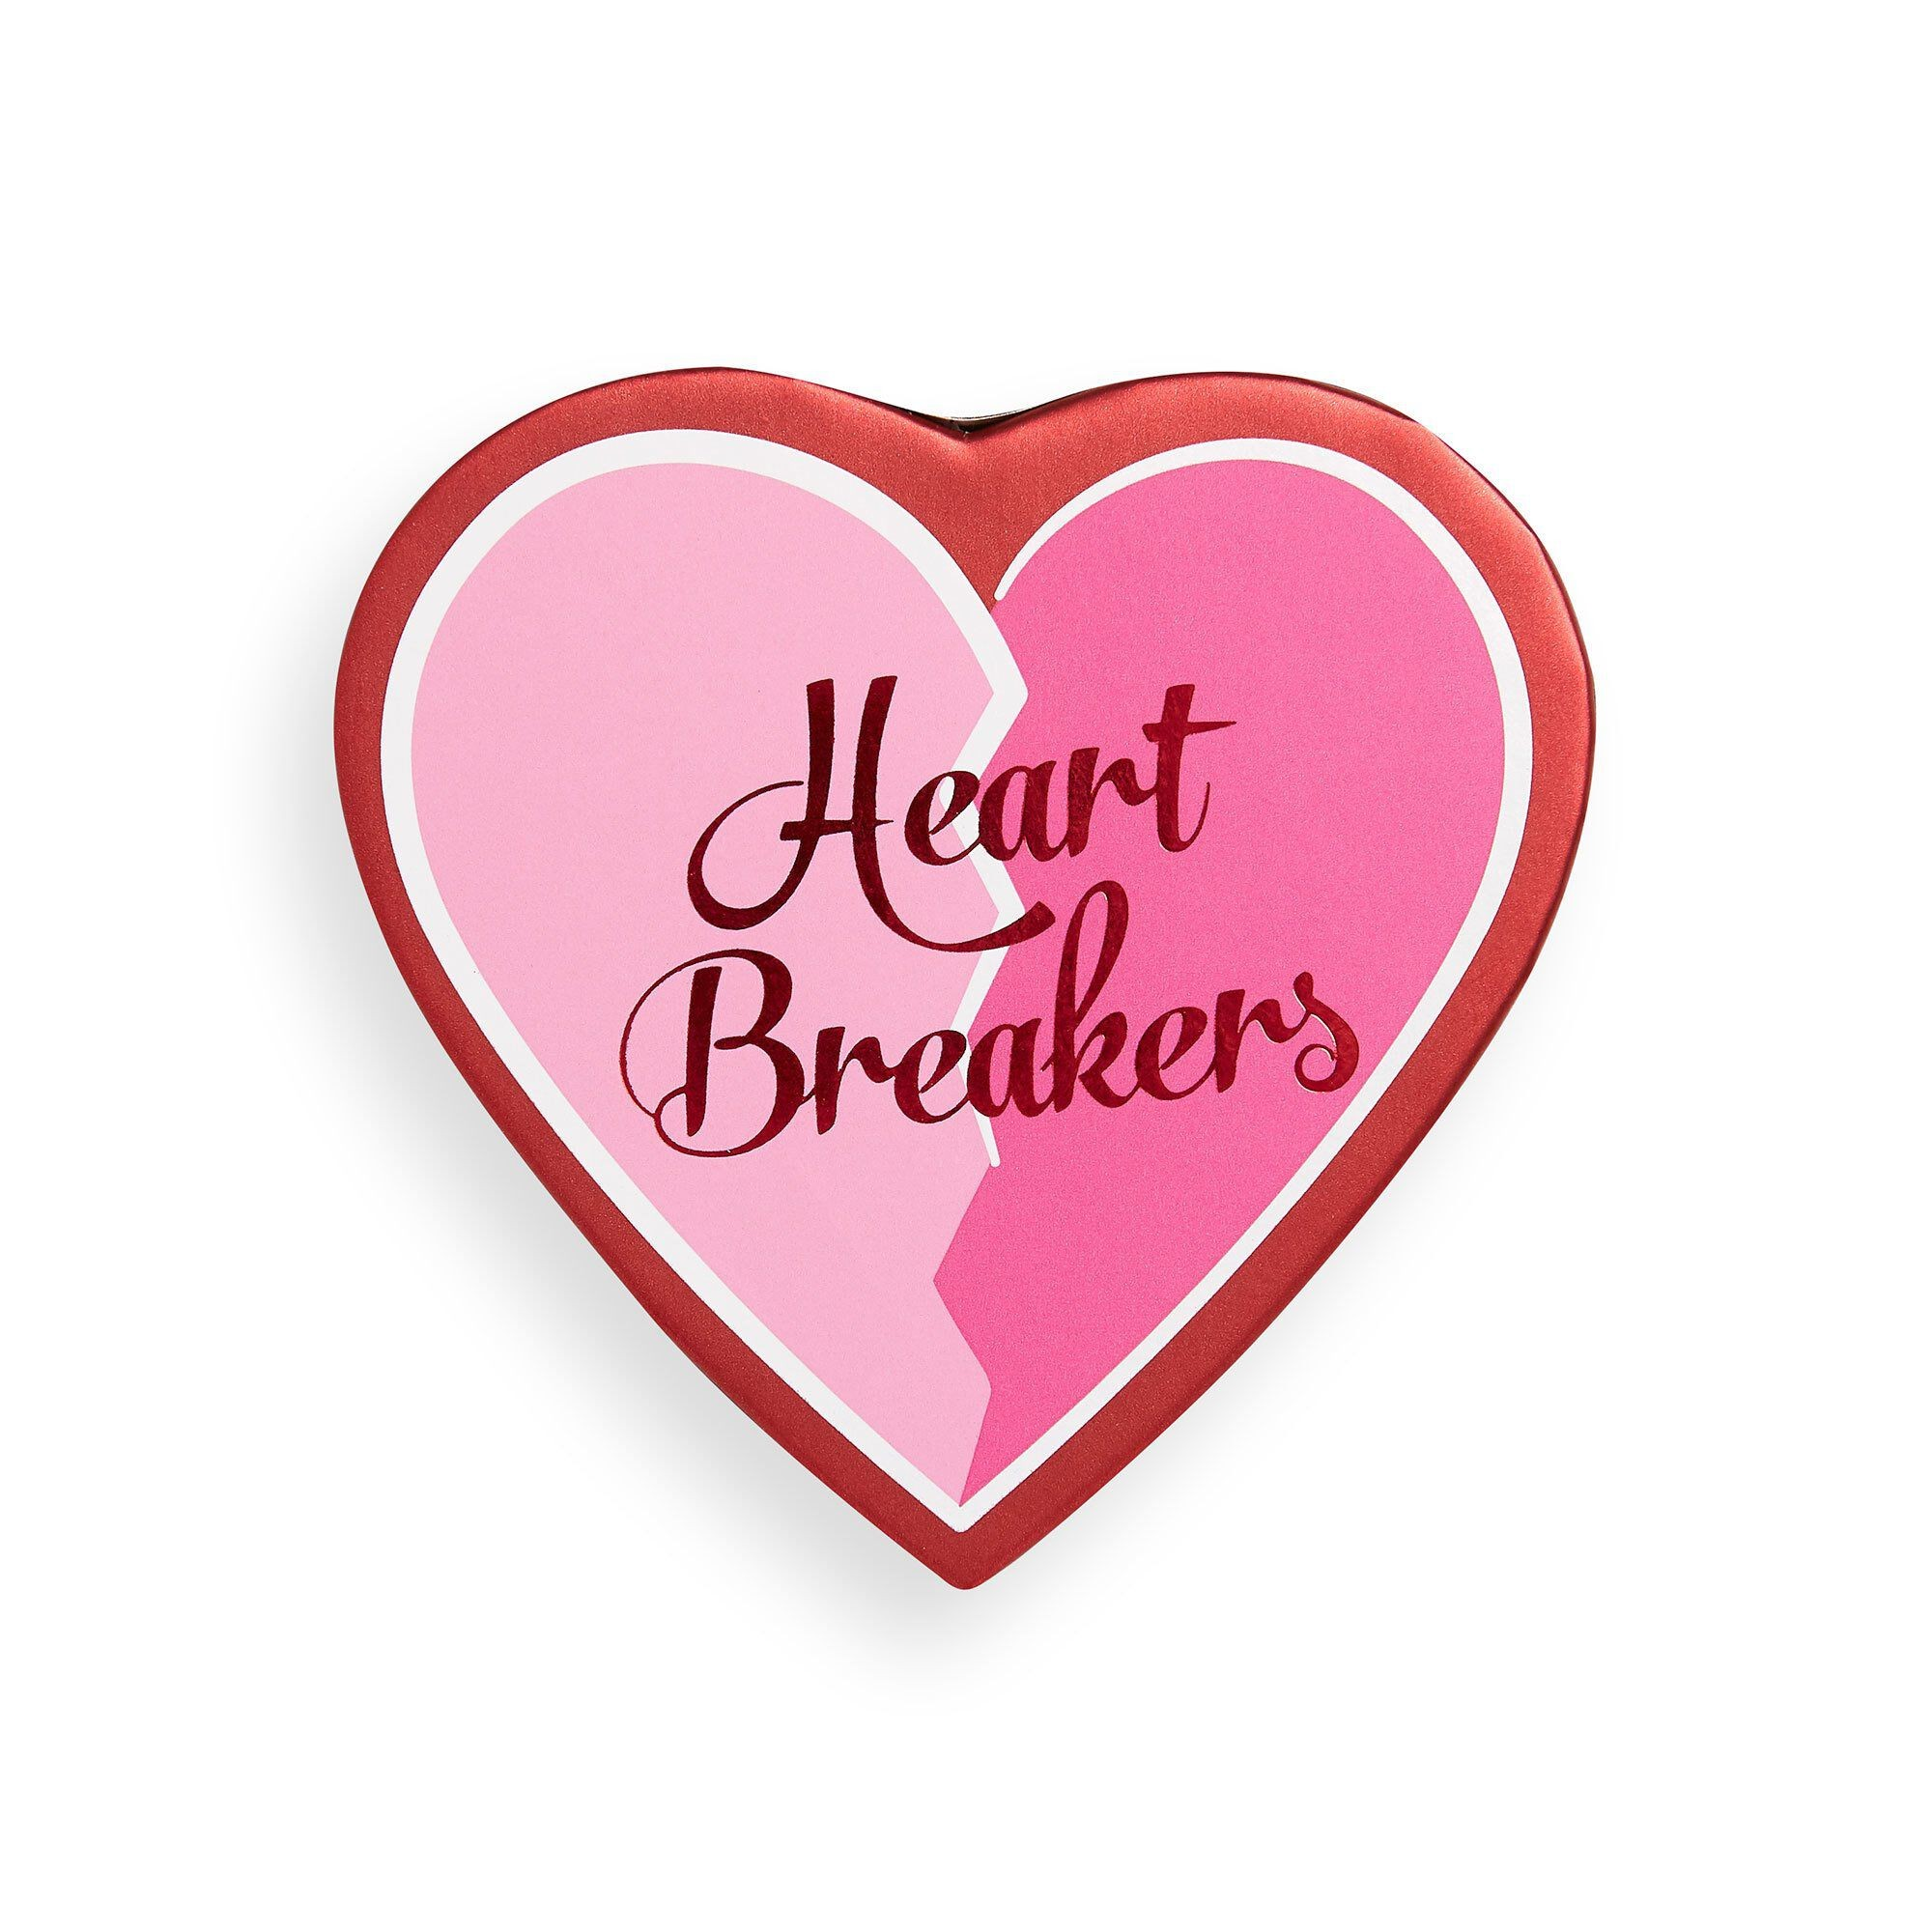 Heartbreakers Blush